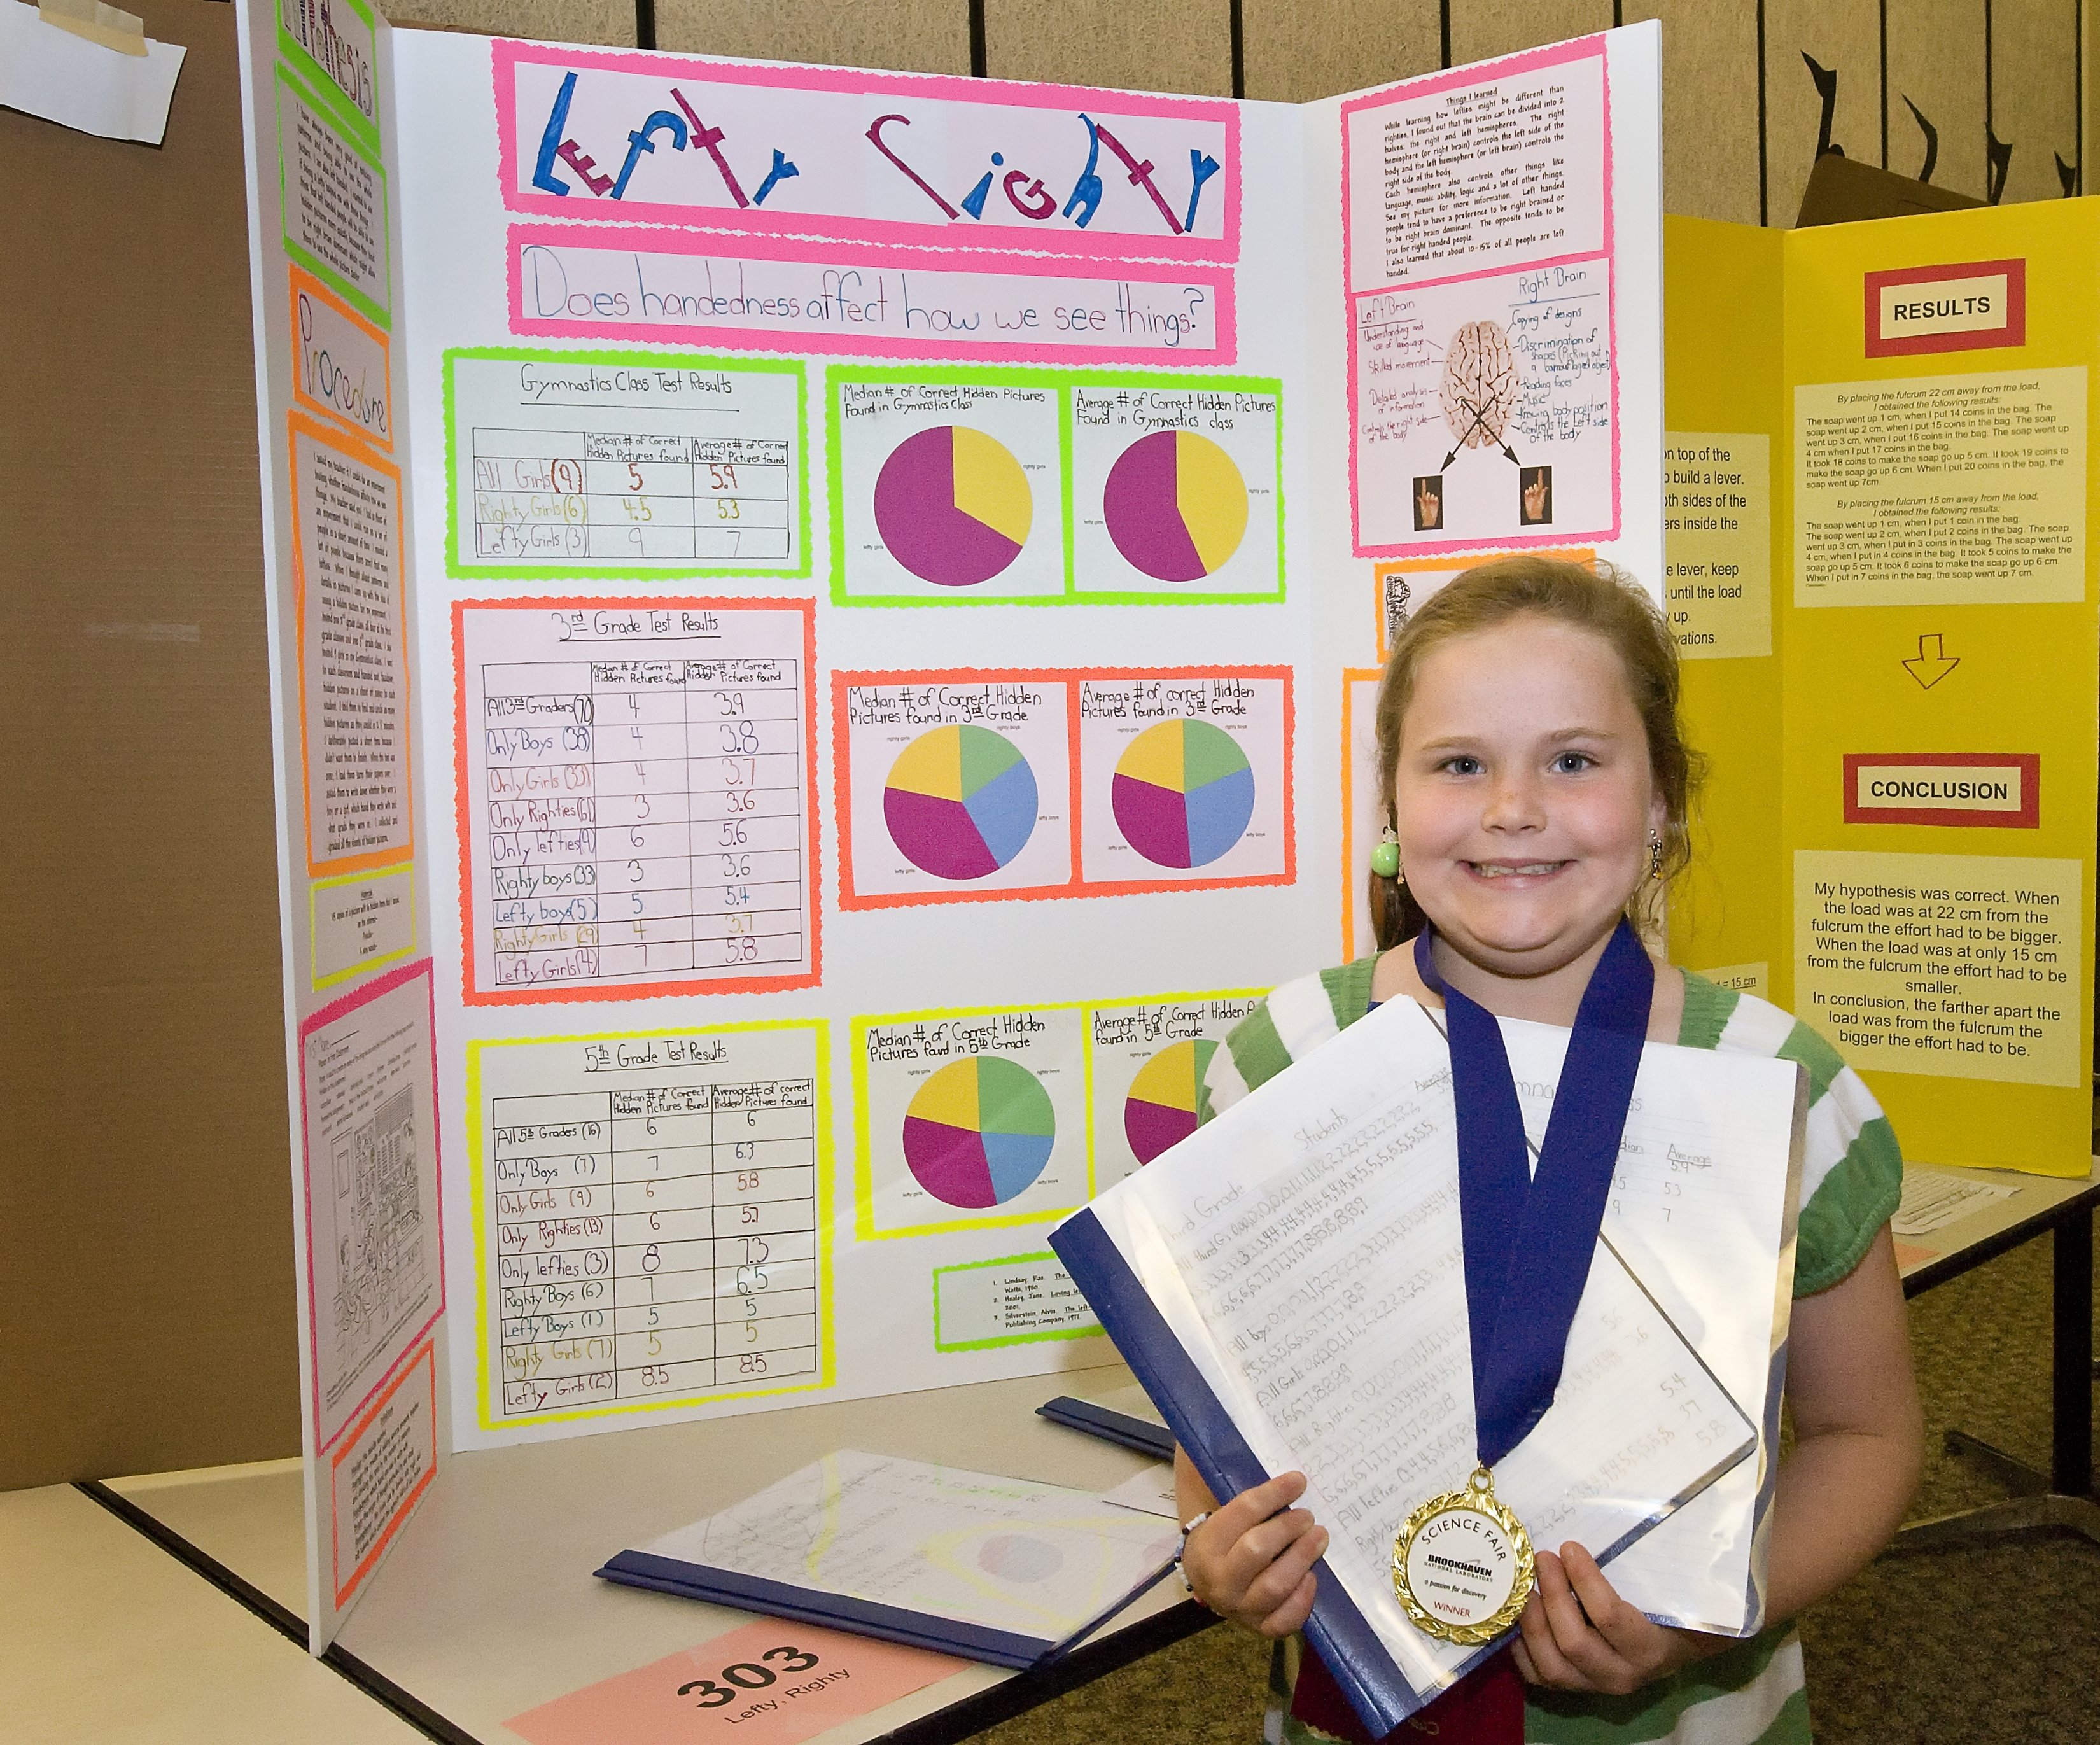 10 Attractive Science Fair Project Ideas For 3Rd Grade second grade science fair project ideas homeshealth 51